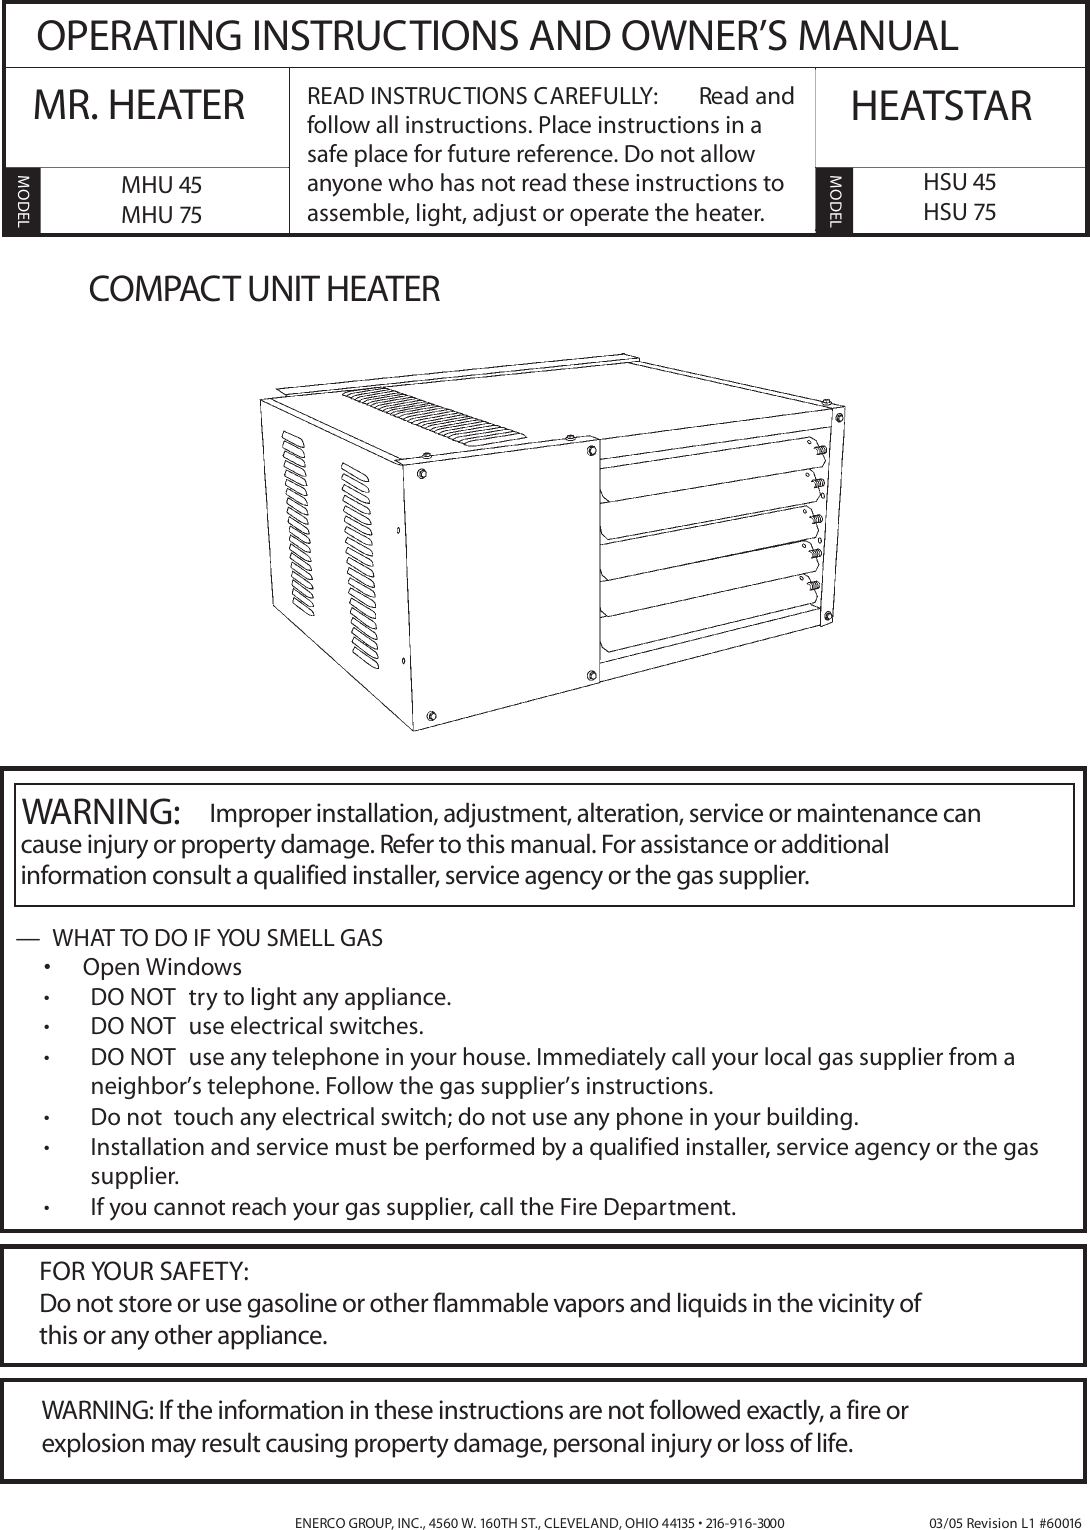 Hsu 75 Mr Heater Wiring Diagram Free Download How To Read Diagrams For Appliances Enerco Mhu 45 Users Manual Cuh